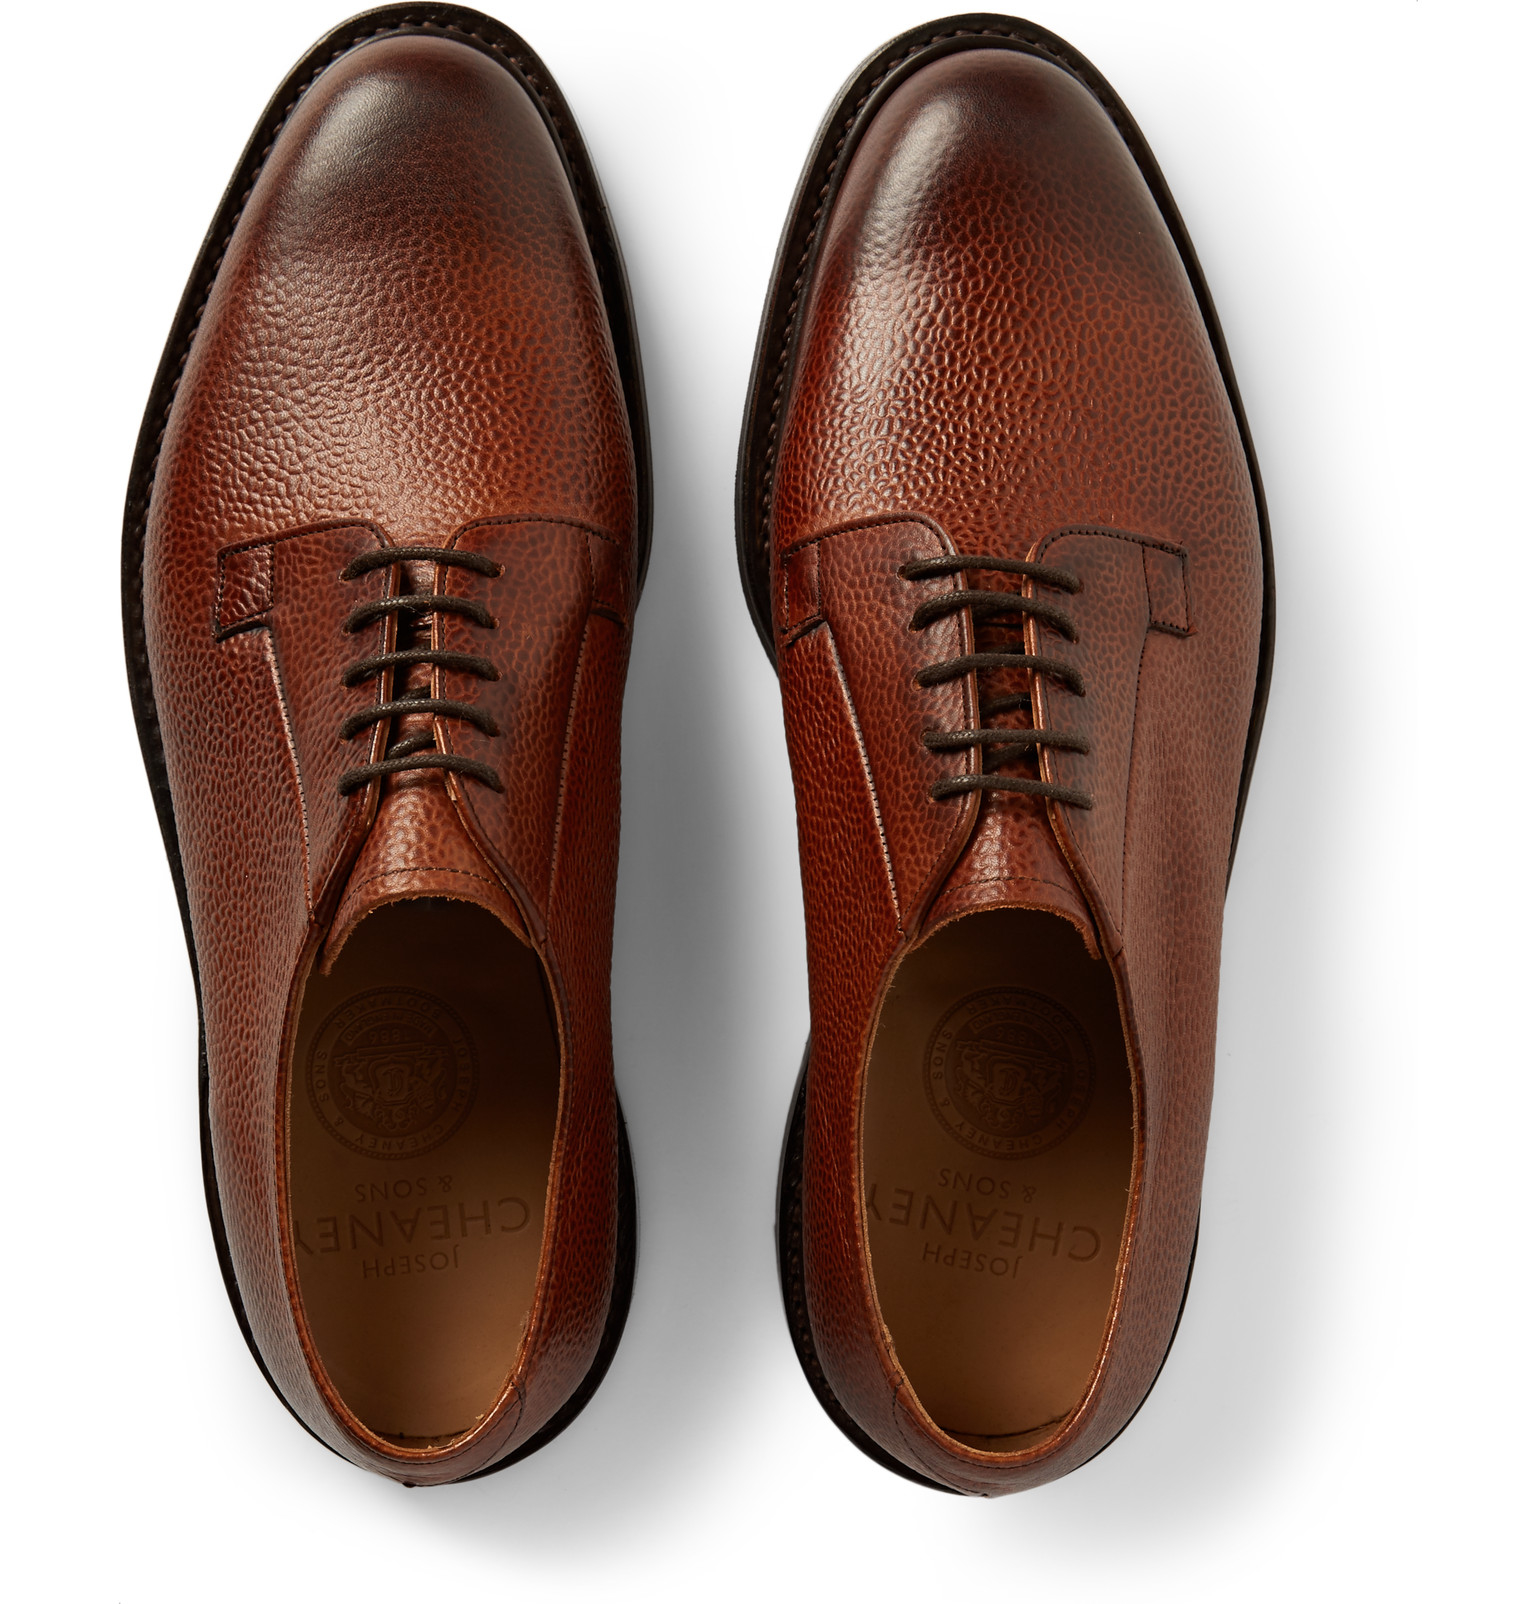 Goodyear Slip On Shoes